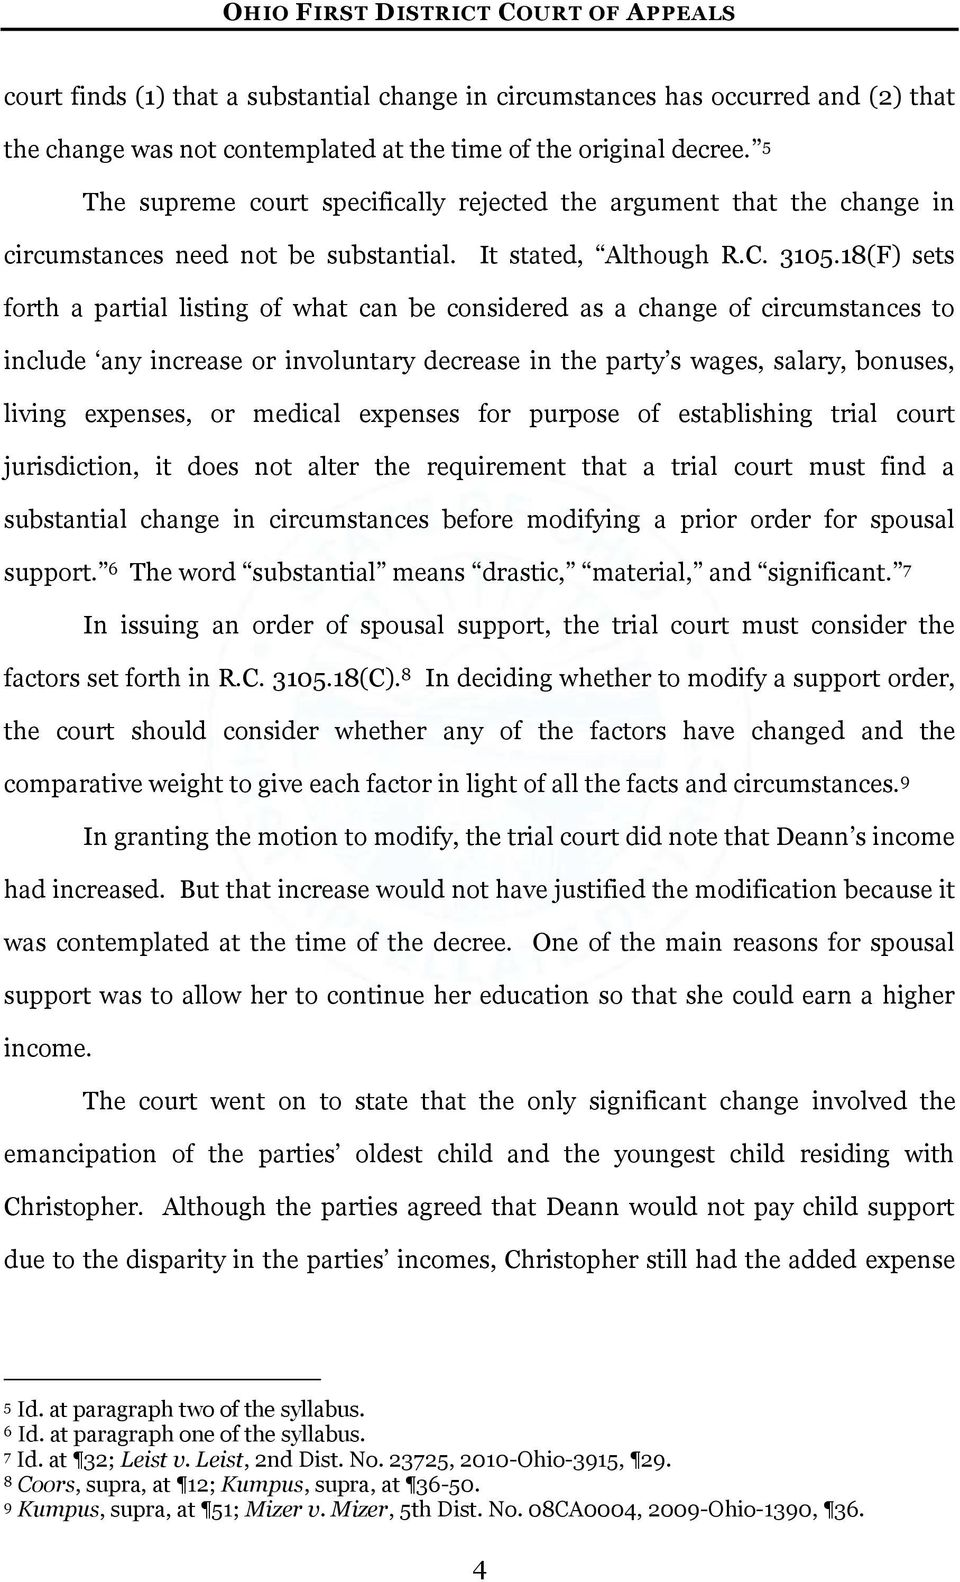 18(F) sets forth a partial listing of what can be considered as a change of circumstances to include any increase or involuntary decrease in the party s wages, salary, bonuses, living expenses, or